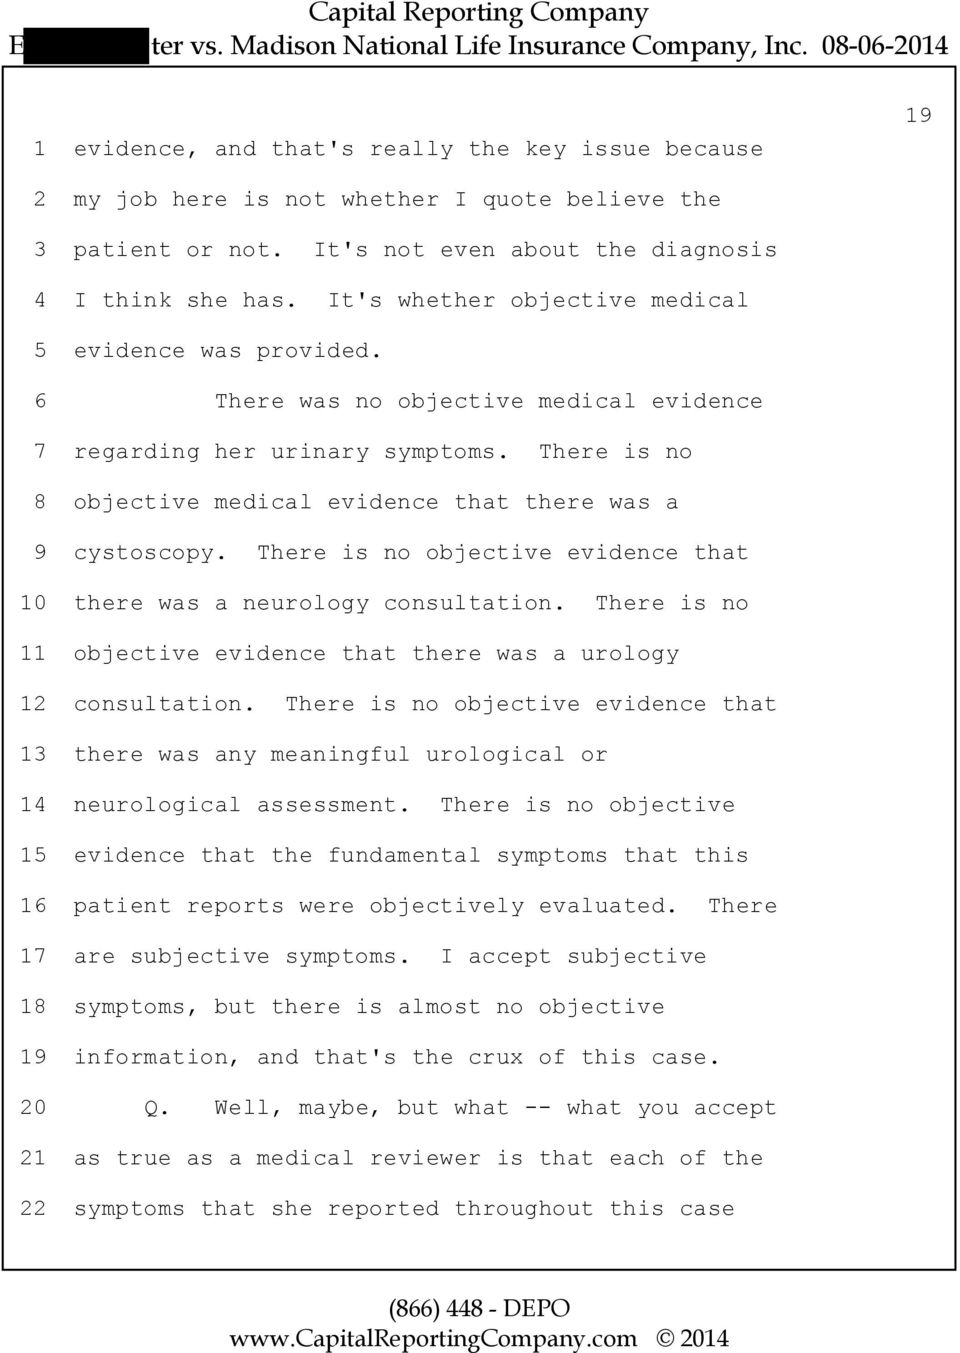 There is no 8 objective medical evidence that there was a 9 cystoscopy. There is no objective evidence that 10 there was a neurology consultation.